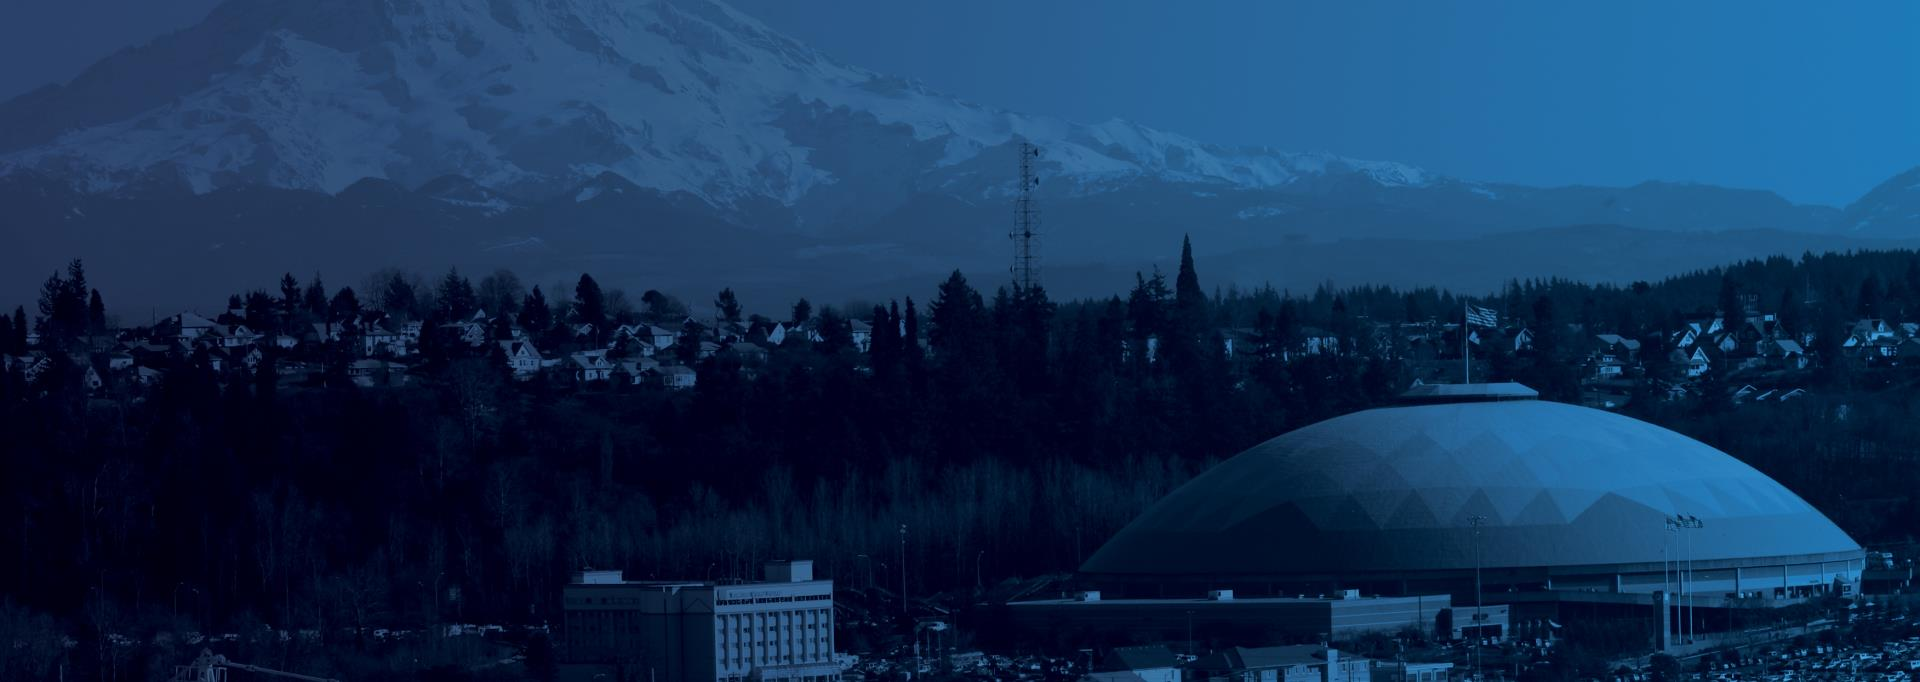 A view of the Tacoma Dome with Mt. Rainier in the background.